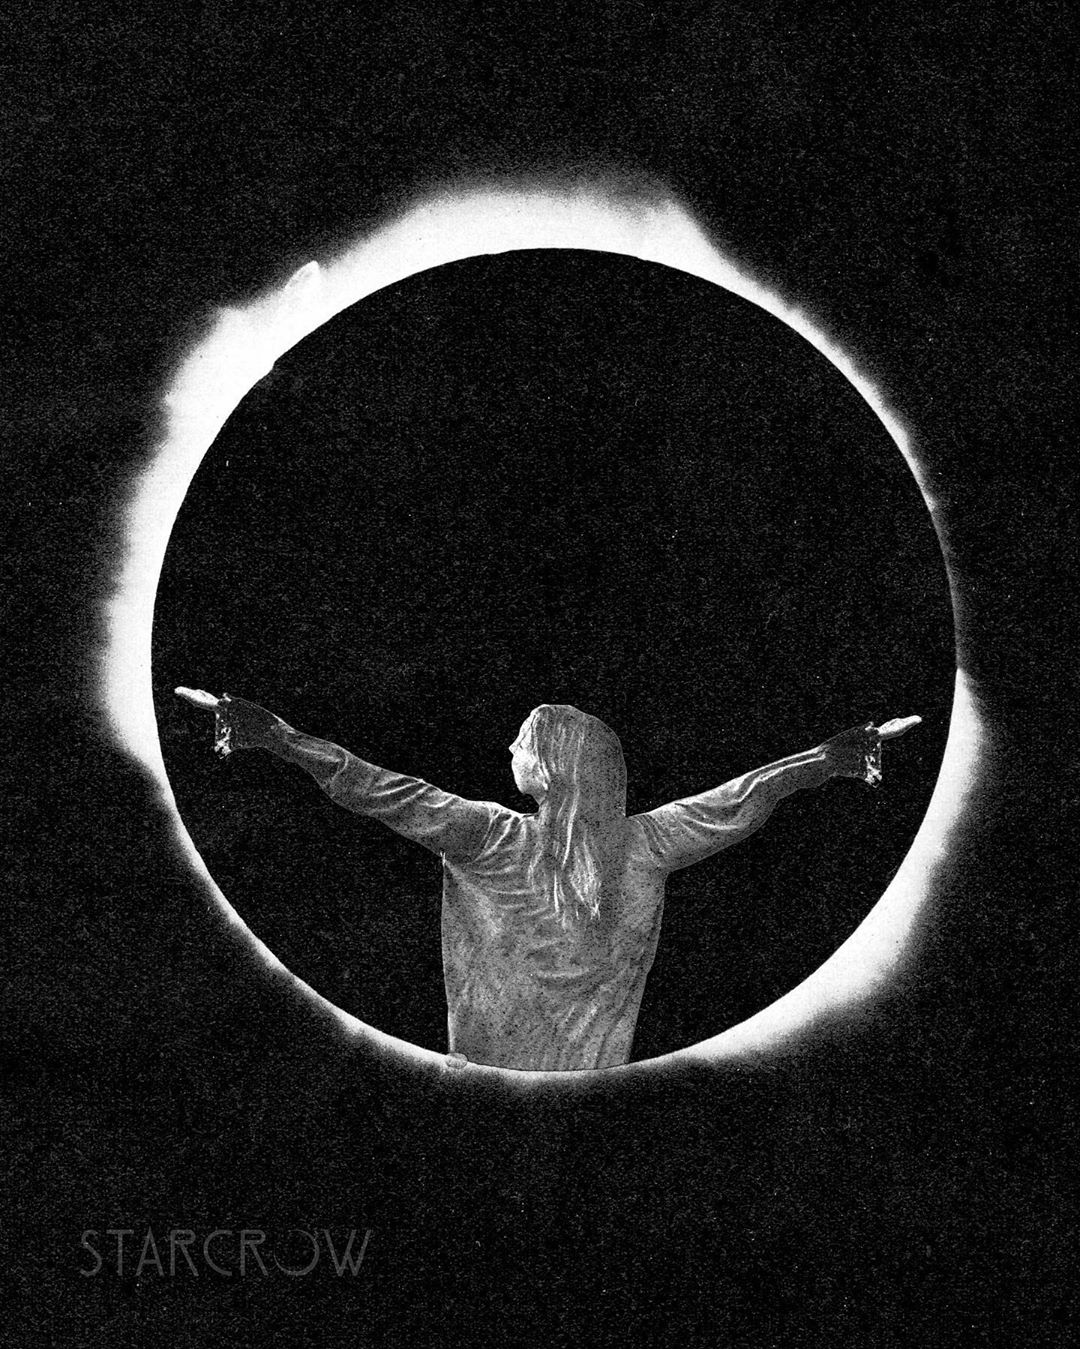 "Following last Tuesday's solar eclipse, we are now officially nine days into Eclipse Season. At this point I have to ask, is it just me, or is there something about this eclipse cycle that is just a bit… trippy? The eclipses are in Cancer and Capricorn this go-round, and they are troubling the lies that Capricorn has told us. You know what I am talking about. The social, familial, and societal pressure to BE and DO a certain thing in order to prove ourselves worthy in the eyes of the world is a Capricorn phenomena. Capricorn gives us the drive to create lives worth living, and the creation of a meaningful life is wonderful thing! The problem comes in when we internalize pressure to conform to socially acceptable ways of being in the world and completely loose touch with our authentic selves. This is the stuff that mid-life crises are made of. The gift of these eclipses is that they are lifting the veil on the old stories about who we should be and asking us to embrace who we really are. They call for death to the structures in our lives that serve to alienate us from our true selves, so that we can live more authentic lives. May we have eyes to see what is real this eclipse season (7/2/19 – 7/16/19). ✨ Want to know how the eclipses are impacting you? Use promo code ""ECLIPSE"" when you book (at www.starcrow.com/astrology-readings) to receive a $25 discount on eclipse readings, from now until the end of July"